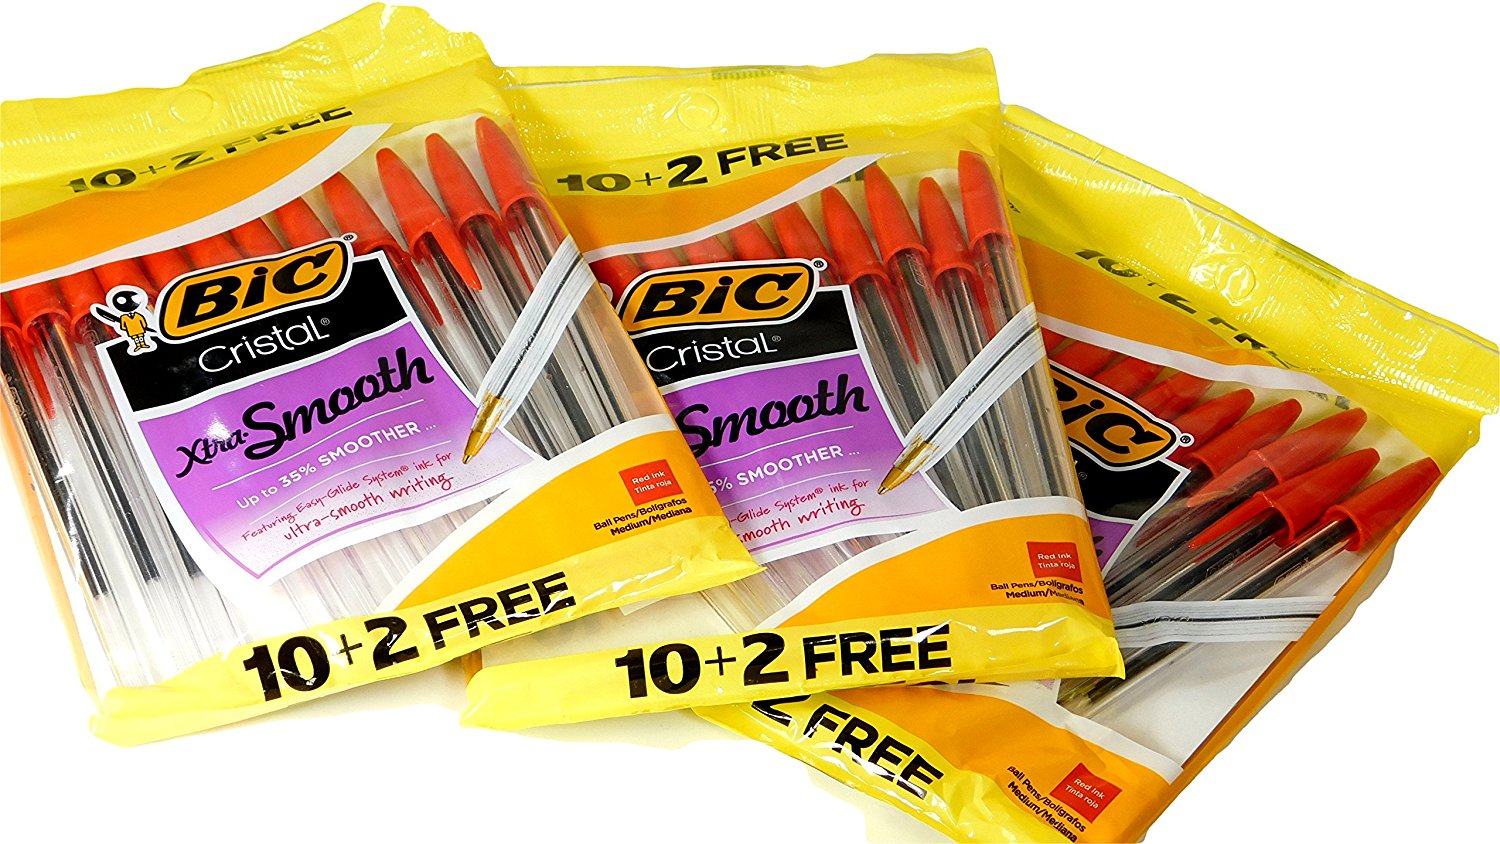 Bic Cristal Xtra Smooth Easy Glide Red Ink Ball Stick Pens (36 Count)